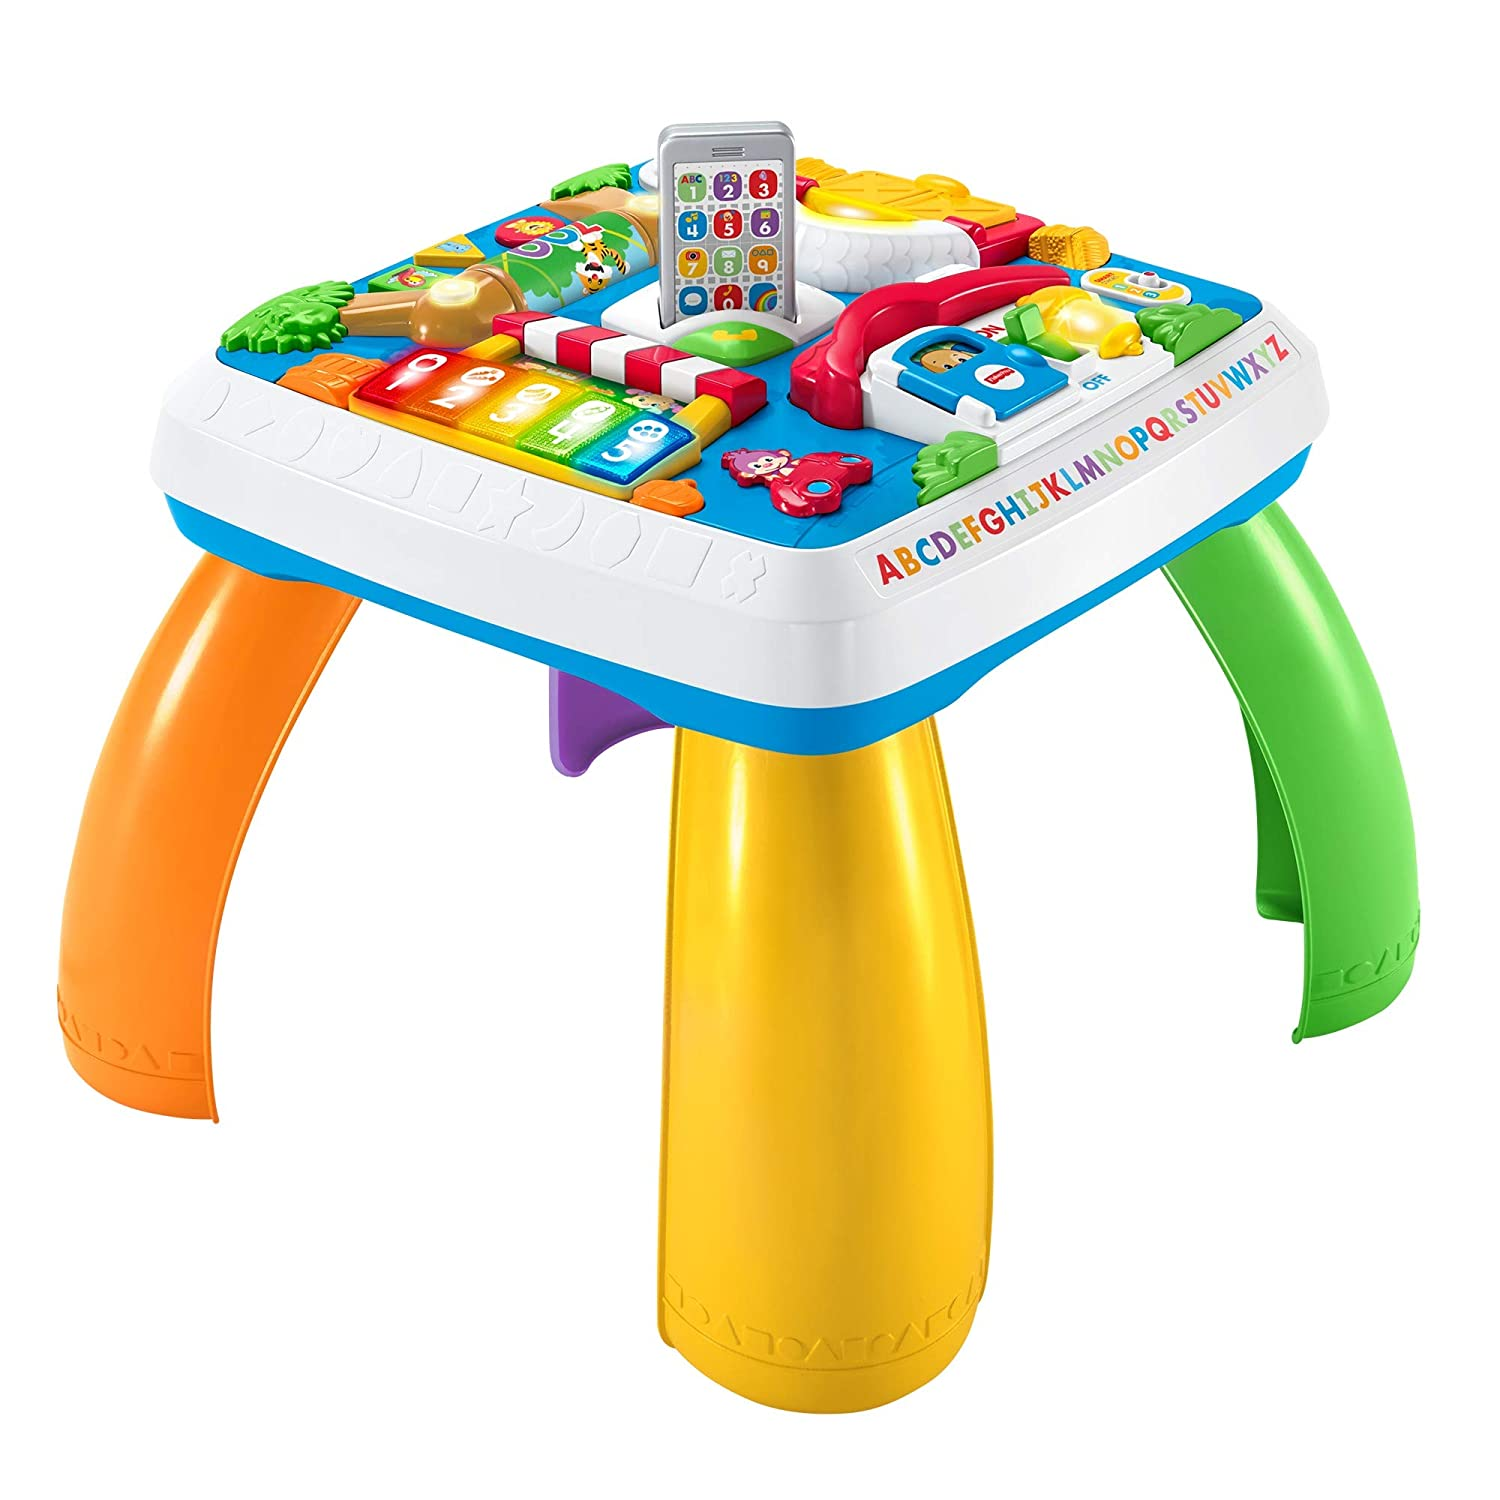 10 Best Baby Activity Tables 2021 [In-Depth Review]